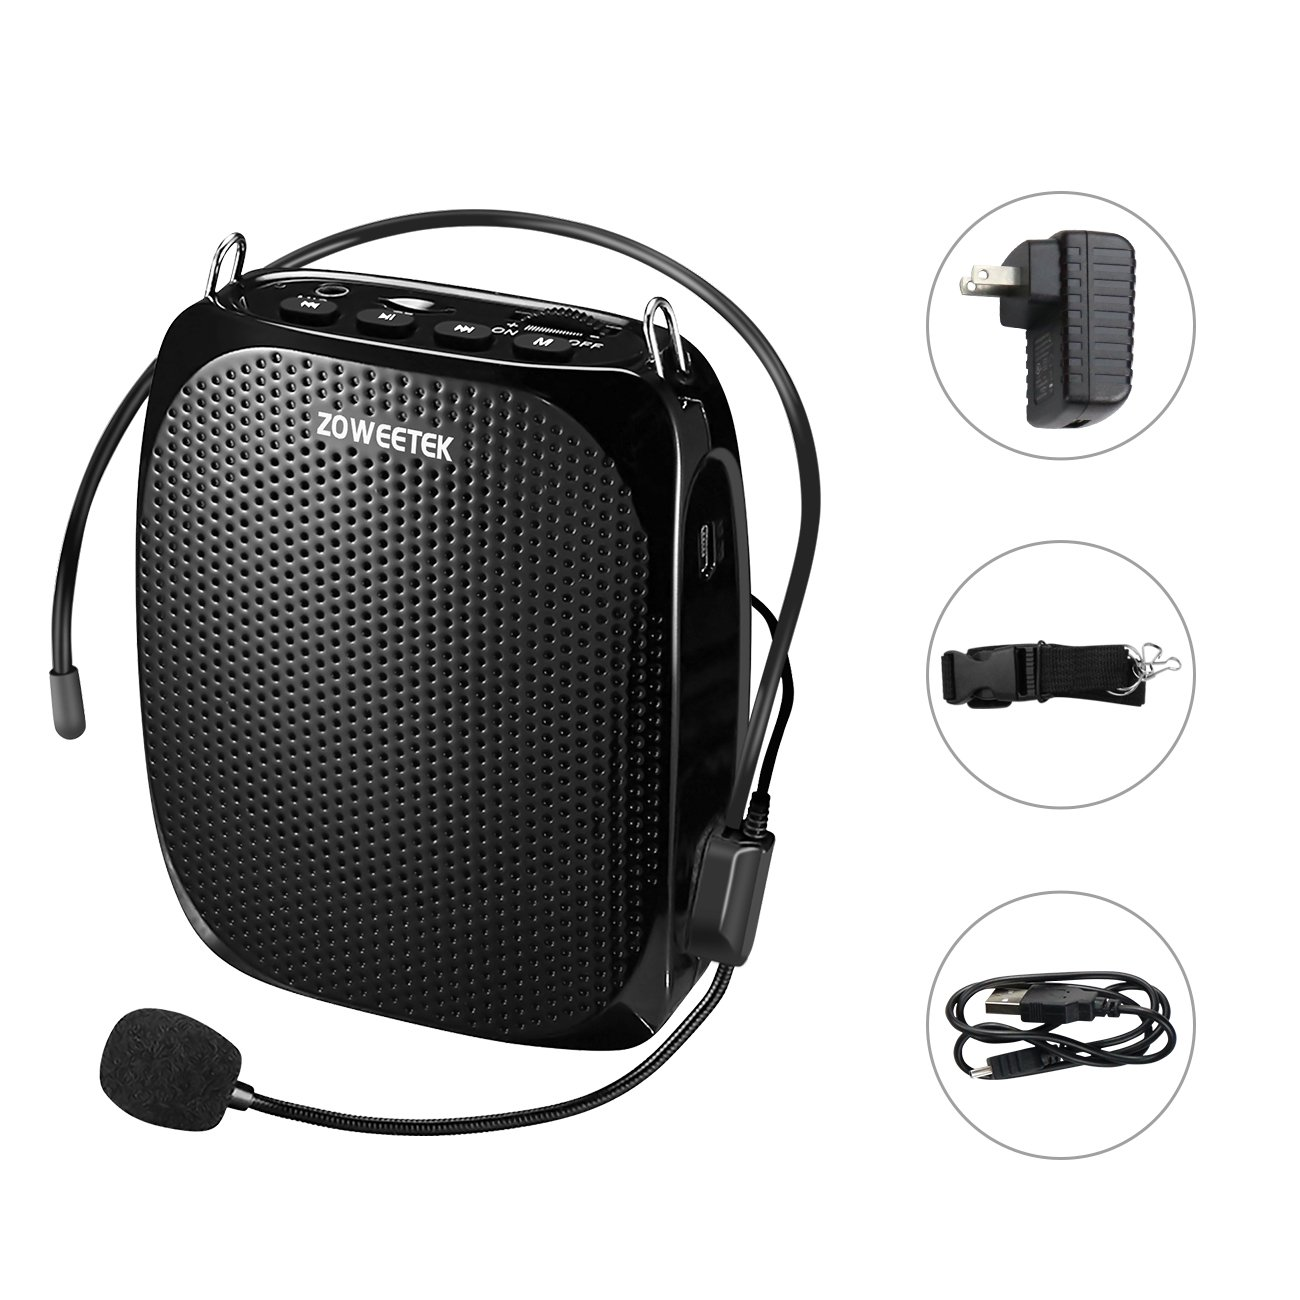 Zoweetek Portable Rechargeable Mini Voice Amplifier With Wired Microphone Headset and Waistband, Supports MP3 Format Audio for Teachers, Singing, Coaches, Training, Presentation, Tour Guide by Zoweetek